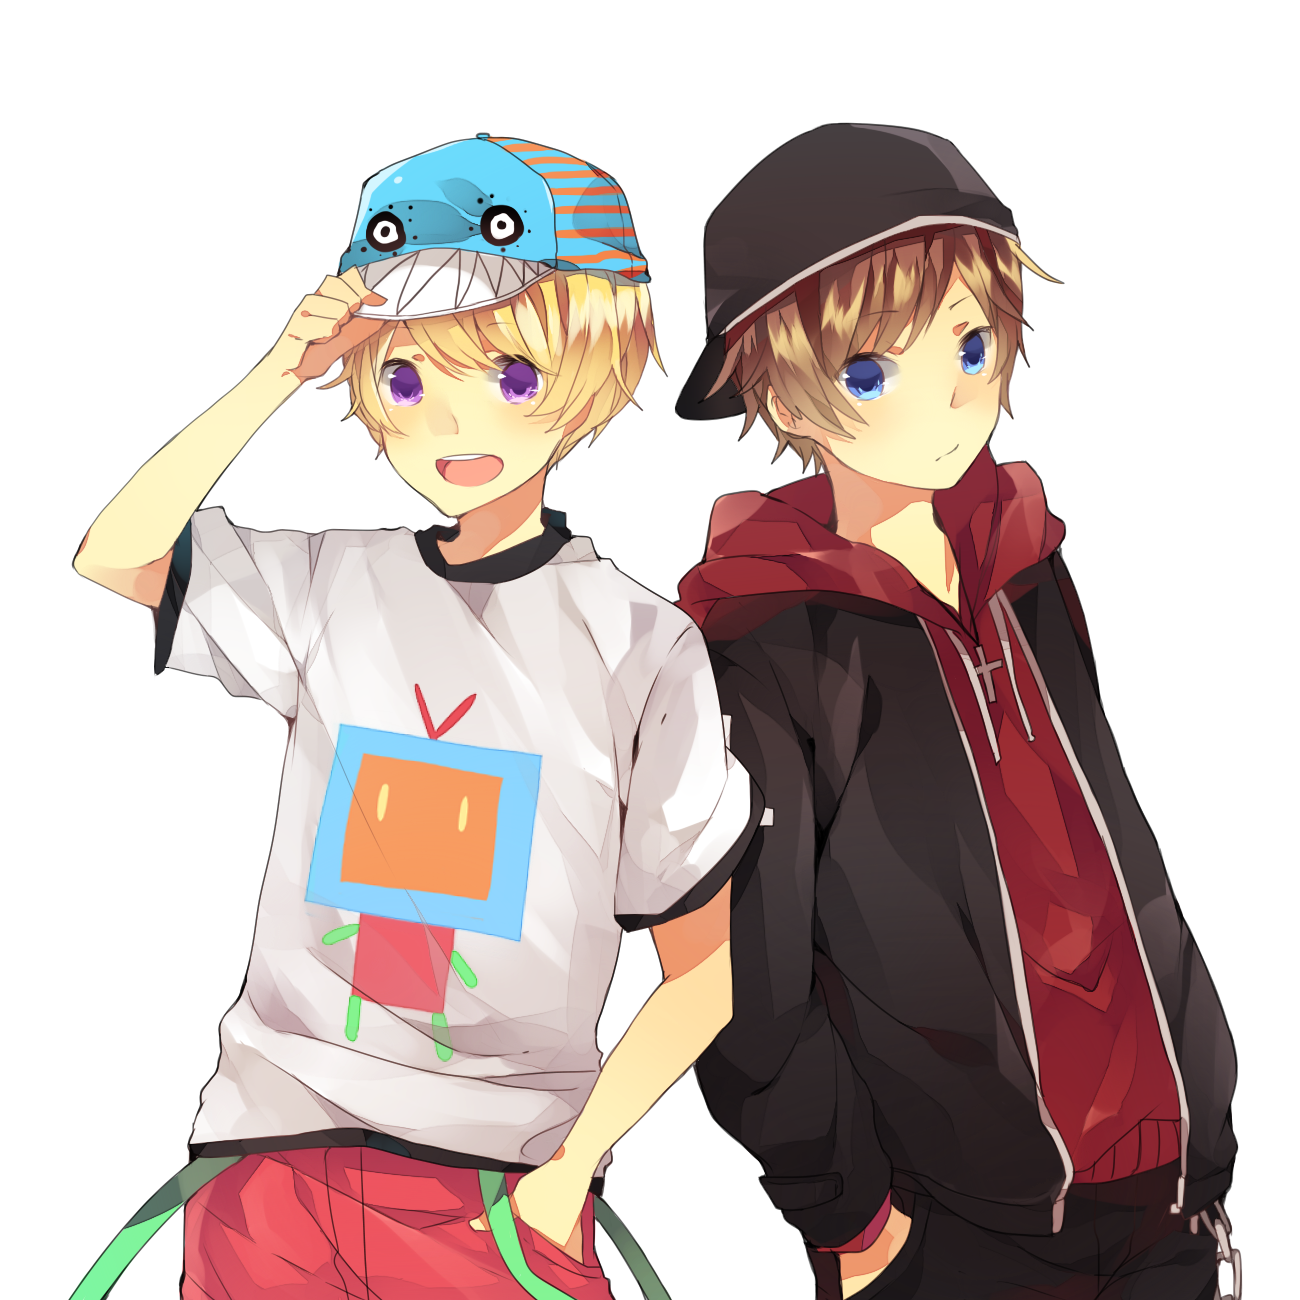 Two Anime Boys